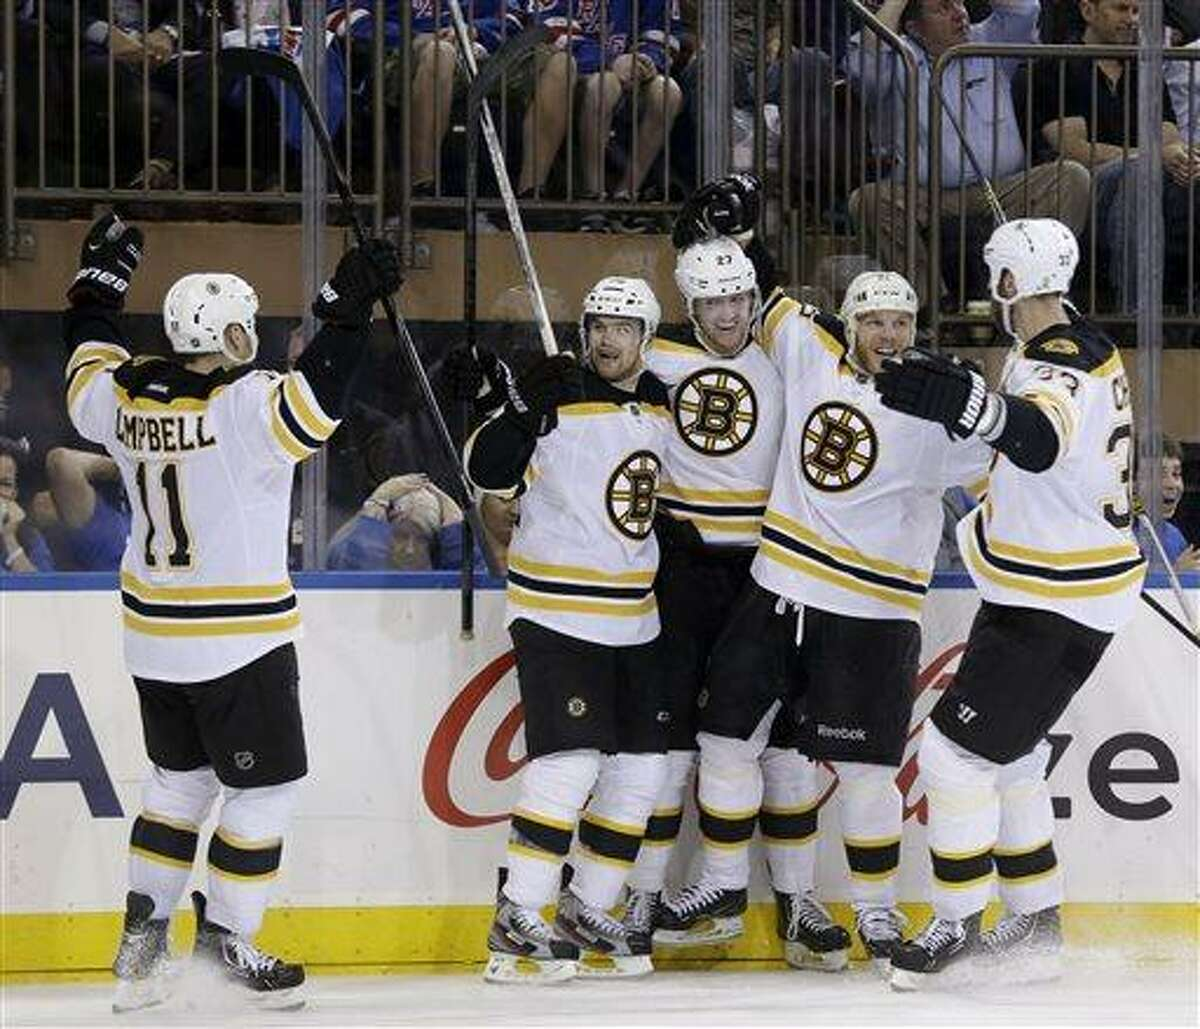 Boston Bruins' Daniel Paille, second from left, celebrates his game-winning goal with teammates Gregory Campbell, left, Dougie Hamilton, center, Shawn Thornton, second from right, and Zdeno Chara during the third period in Game 3 of the Eastern Conference semifinals against the New York Rangers in the NHL hockey Stanley Cup playoffs in New York Tuesday, May 21, 2013, in New York. The Bruins won 2-1 and lead the best-of-seven games series 3-0. (AP Photo/Seth Wenig)